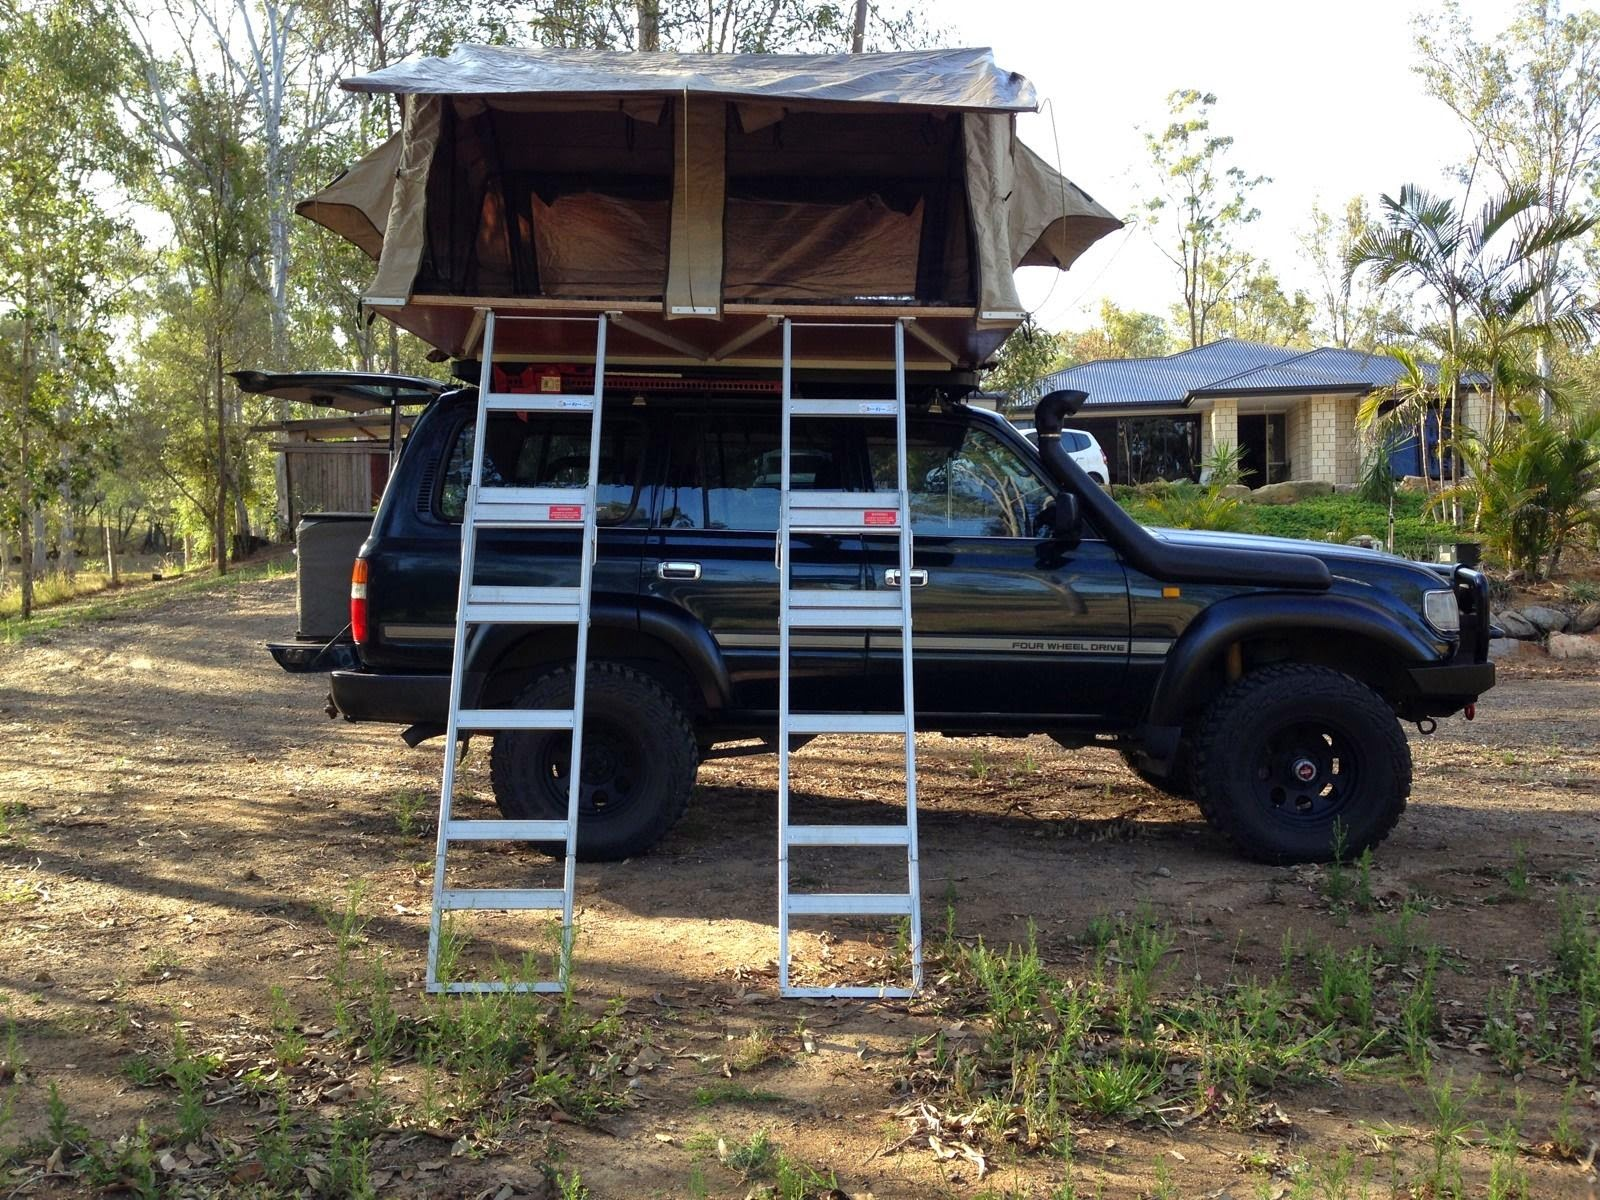 1992 Toyota Landcruiser GXL 80 Series with Camper - 4x4 Cars